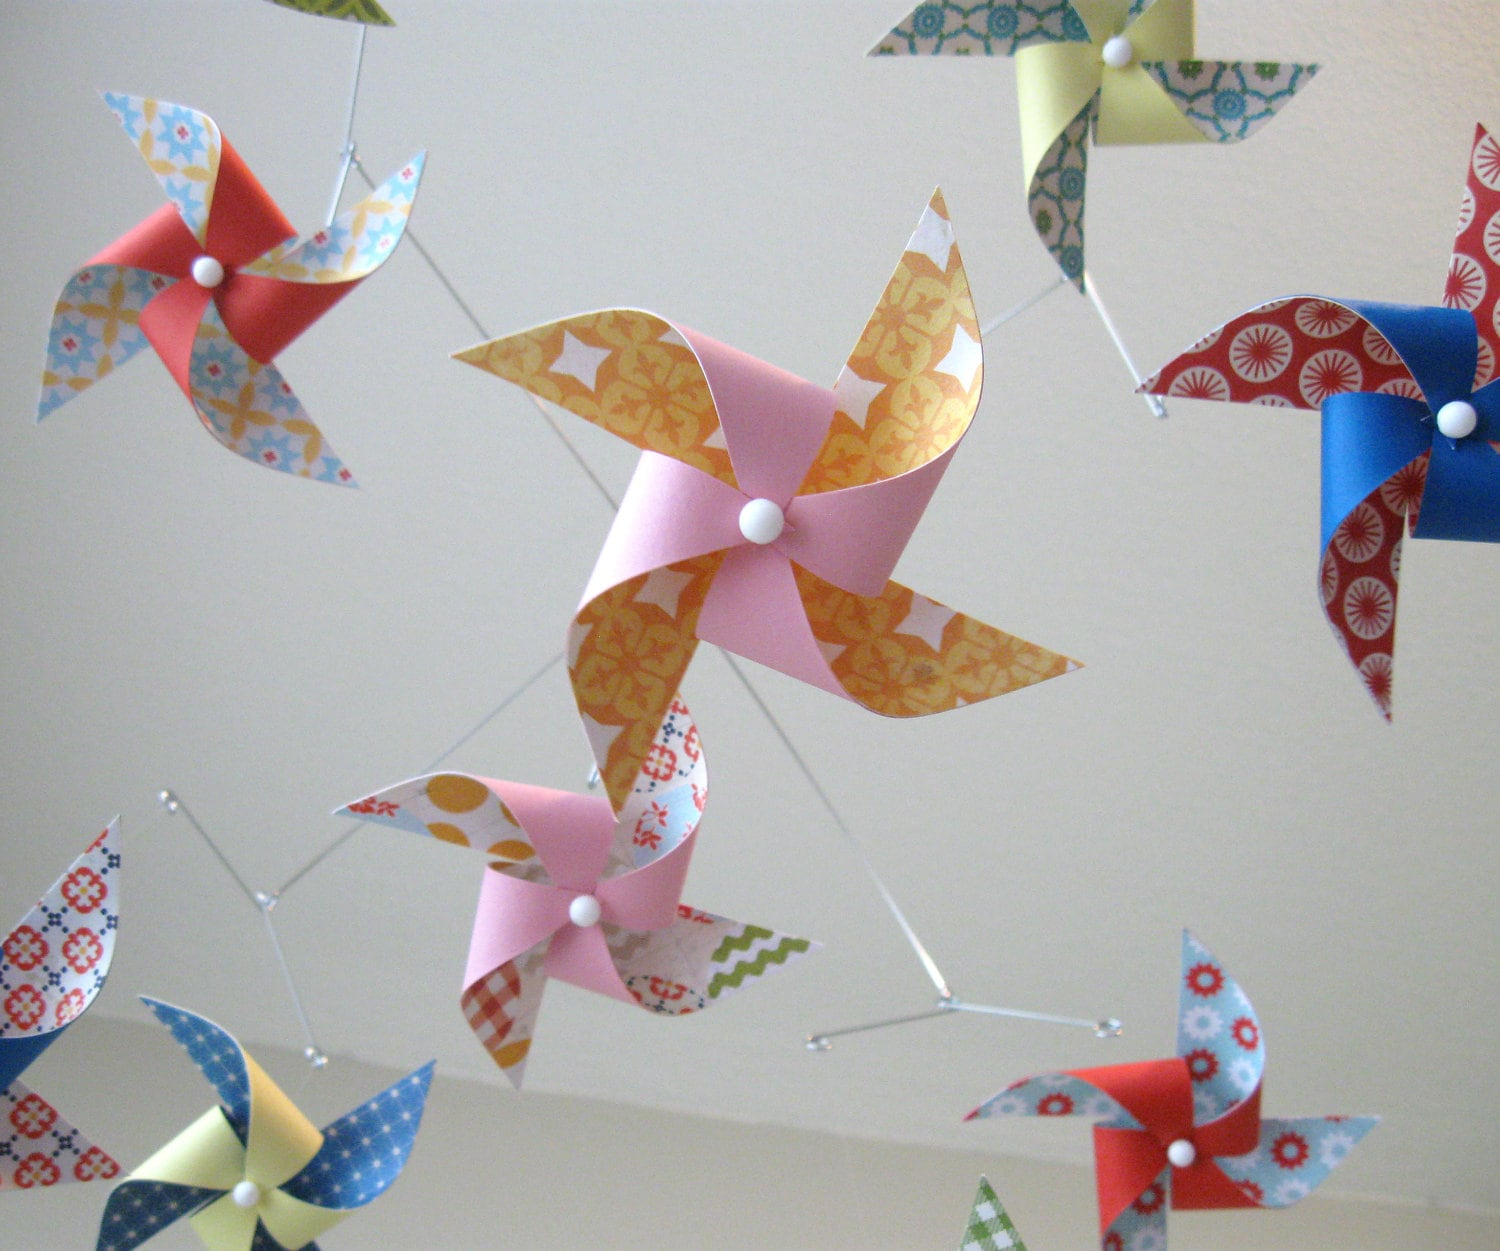 Baby Girl Mobile / Nursery Mobile / Crib Mobile / Pinwheel Mobile: Sugar and Spice - mamax2